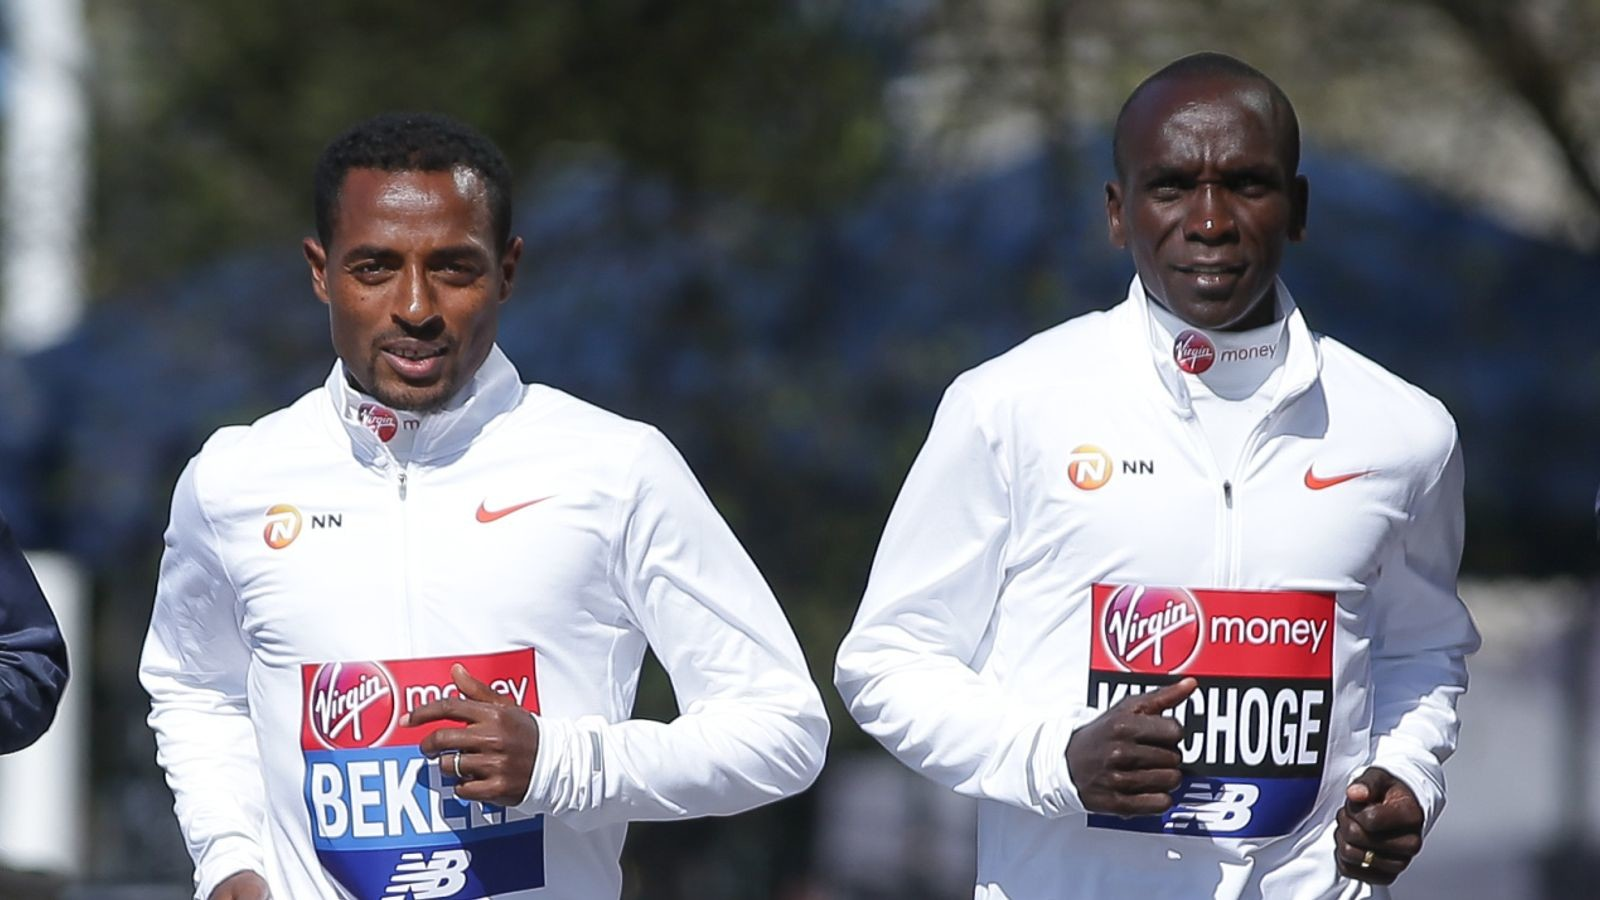 Athletic superstars like Eliud Kipchoge and Kenenisa Bekele will take part in a worldwide virtual team relay marathon next month